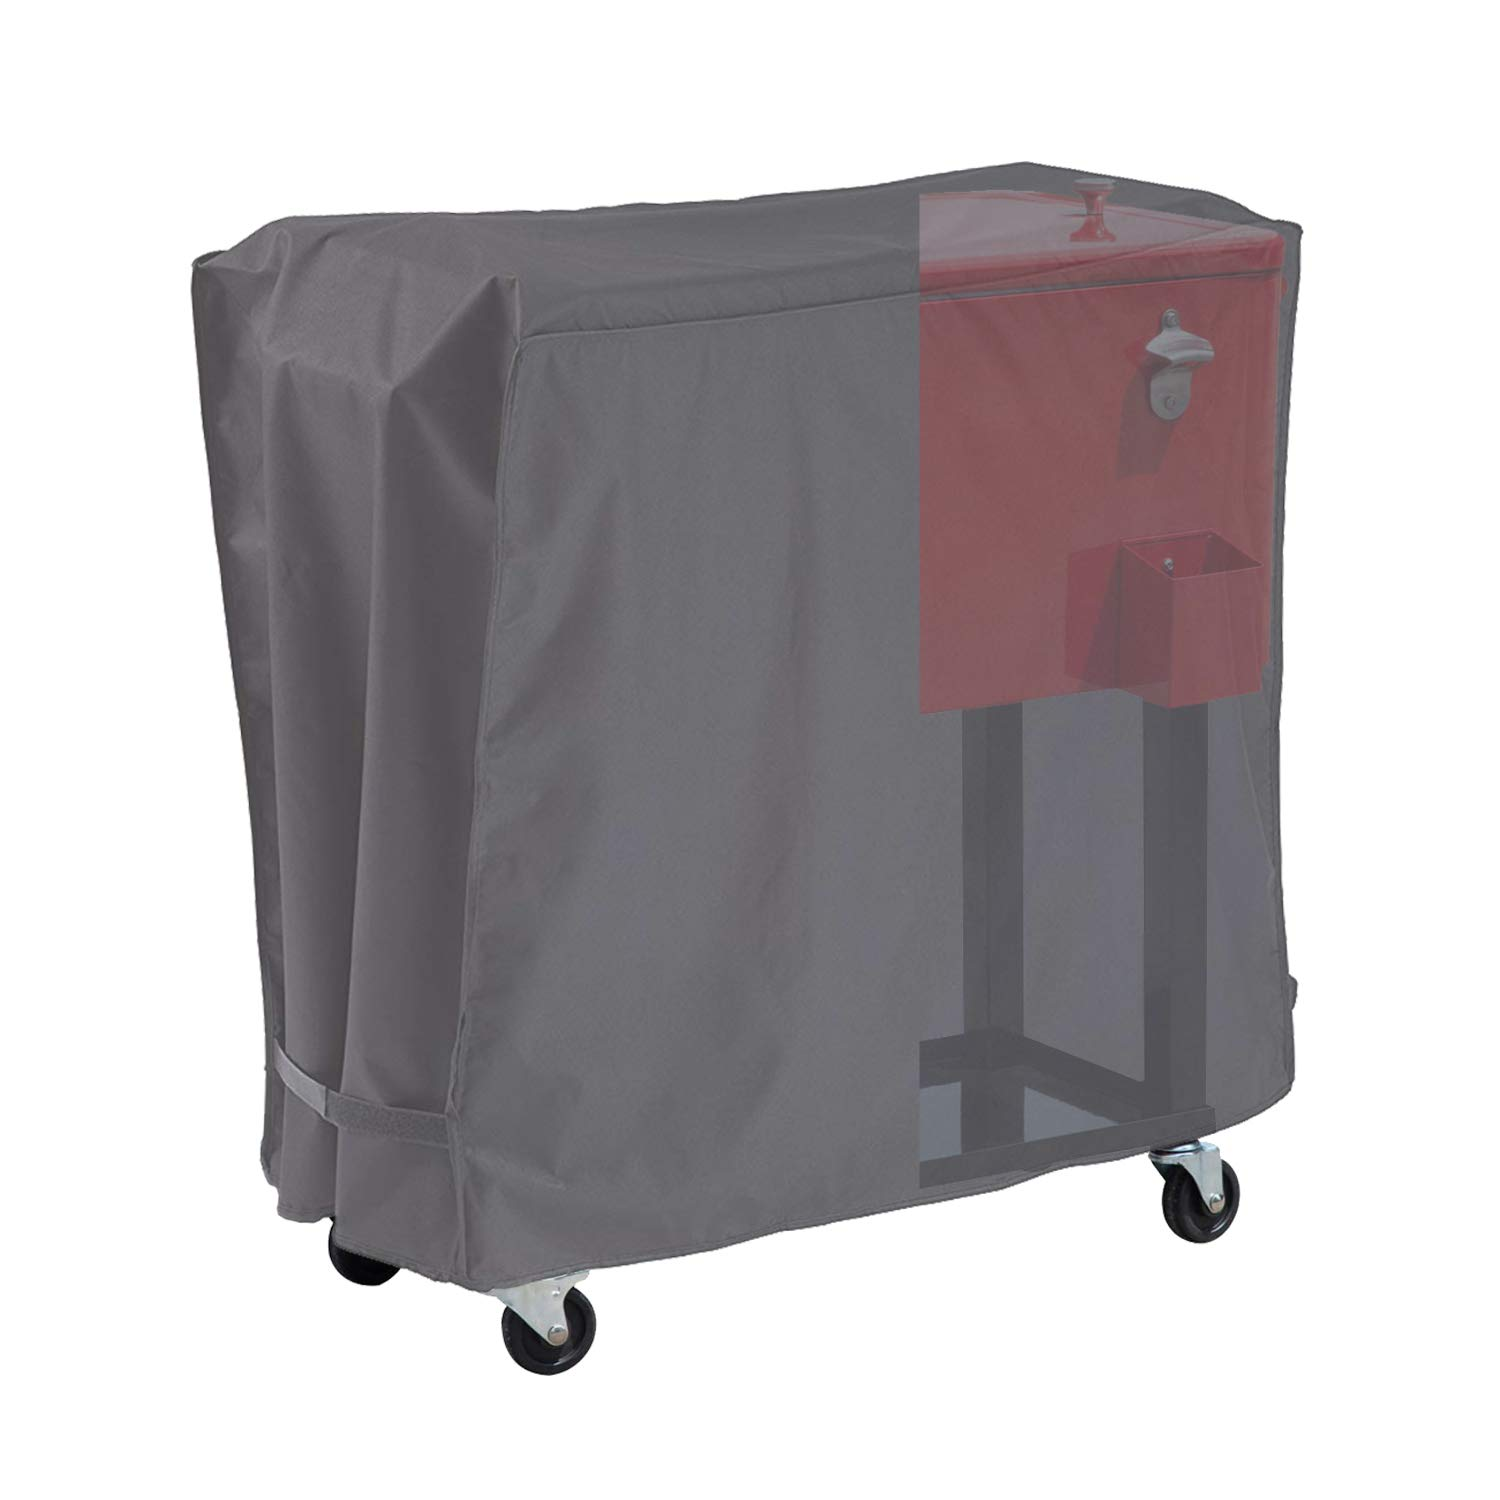 AKEfit Cooler Cart Cover Waterproof Fits Most 80qt Quart Rolling Party Coolers Patio Outdoor Cooler Beverage Cart Ice Chest Gray by AKEfit